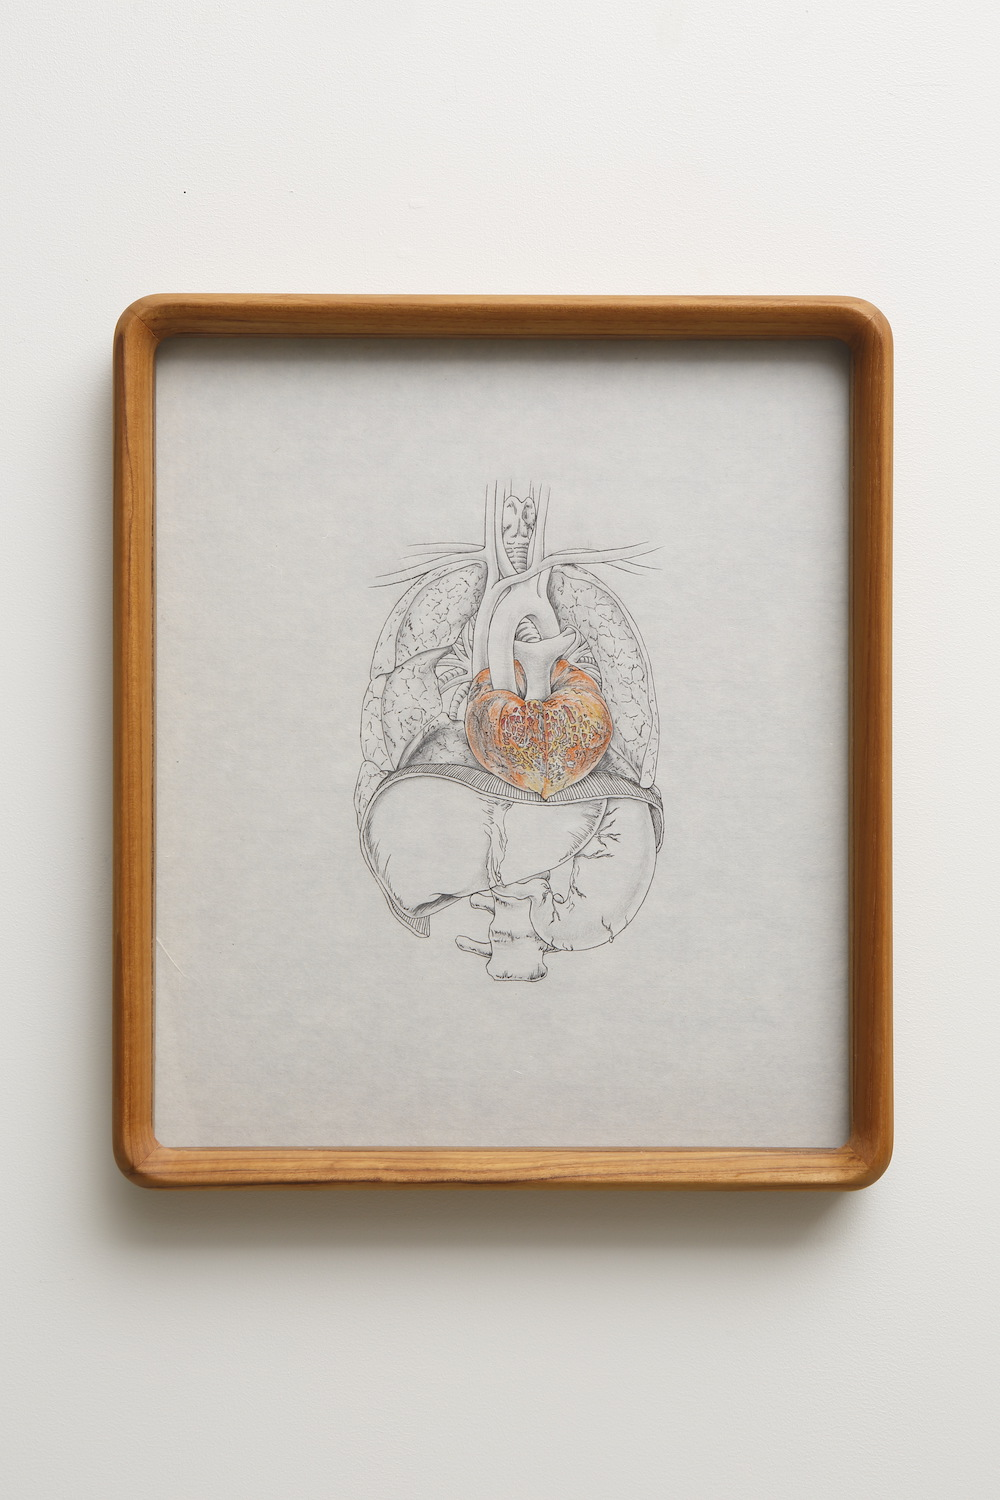 Tabaimo, flow-wer 020, 2015, ink, bees wax crayon, color pencil and pencil on Japanese paper, 39 x 33.8 x 4.6 cm (frame)